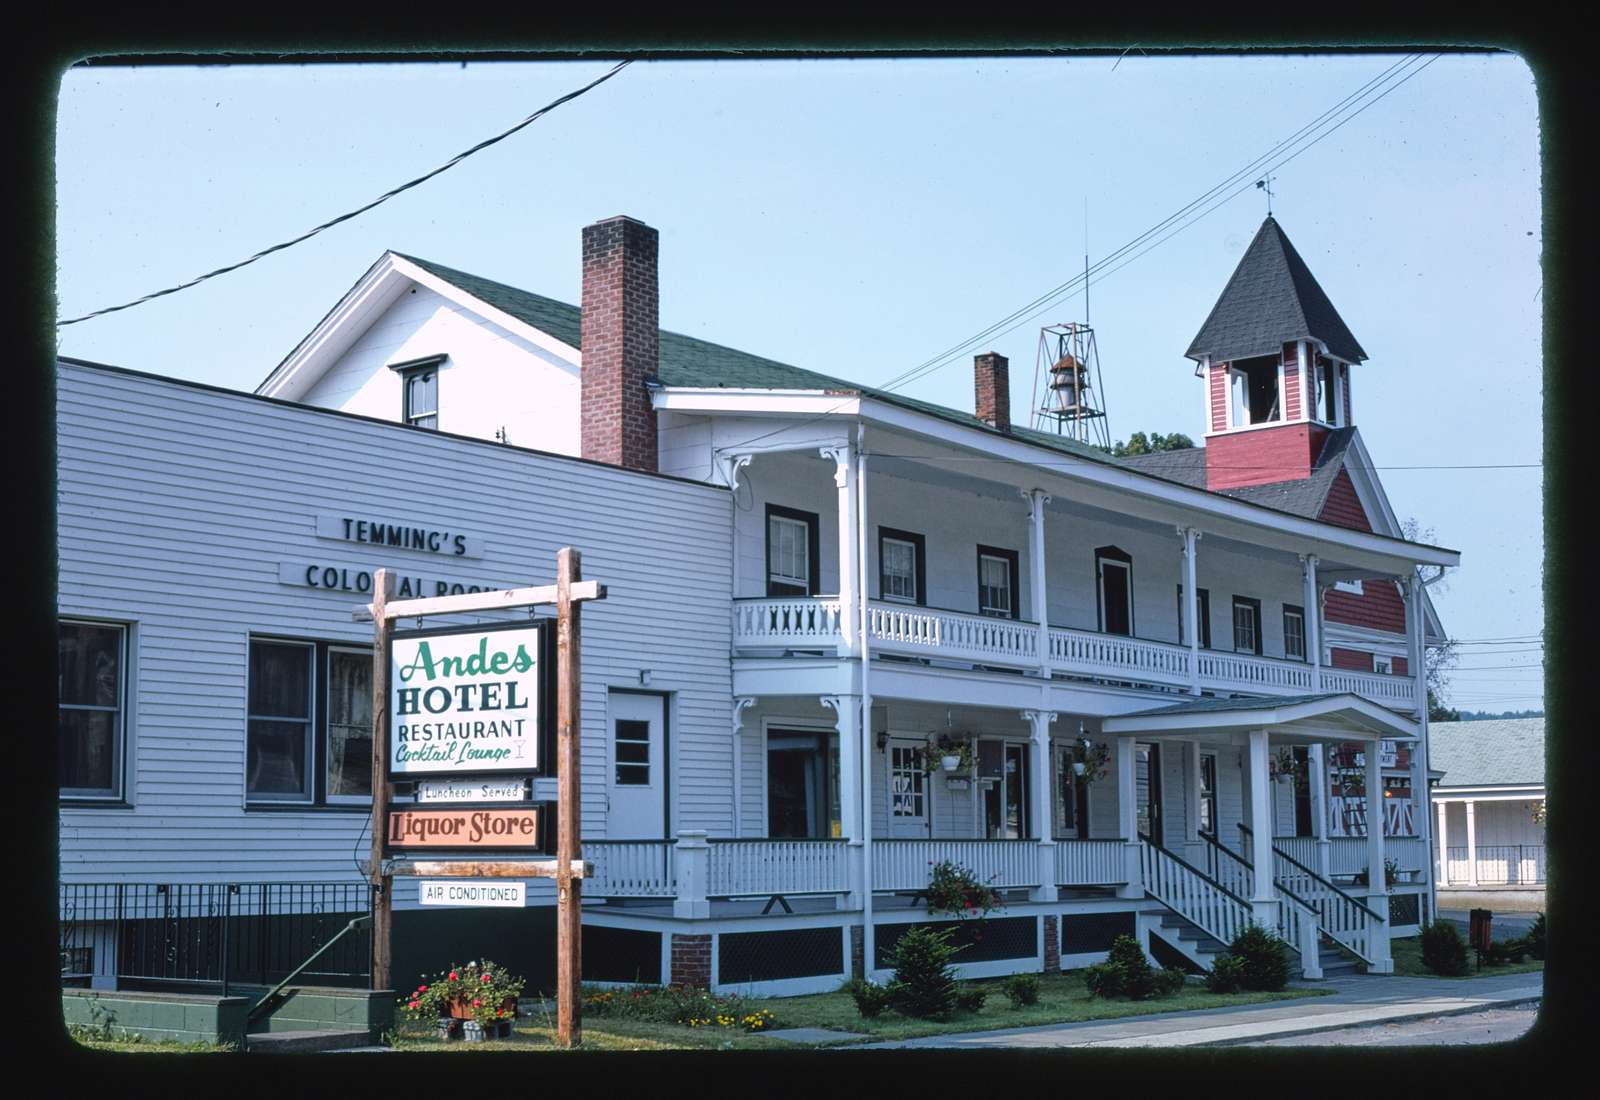 Andes Hotel, Route 28, Andes, New York